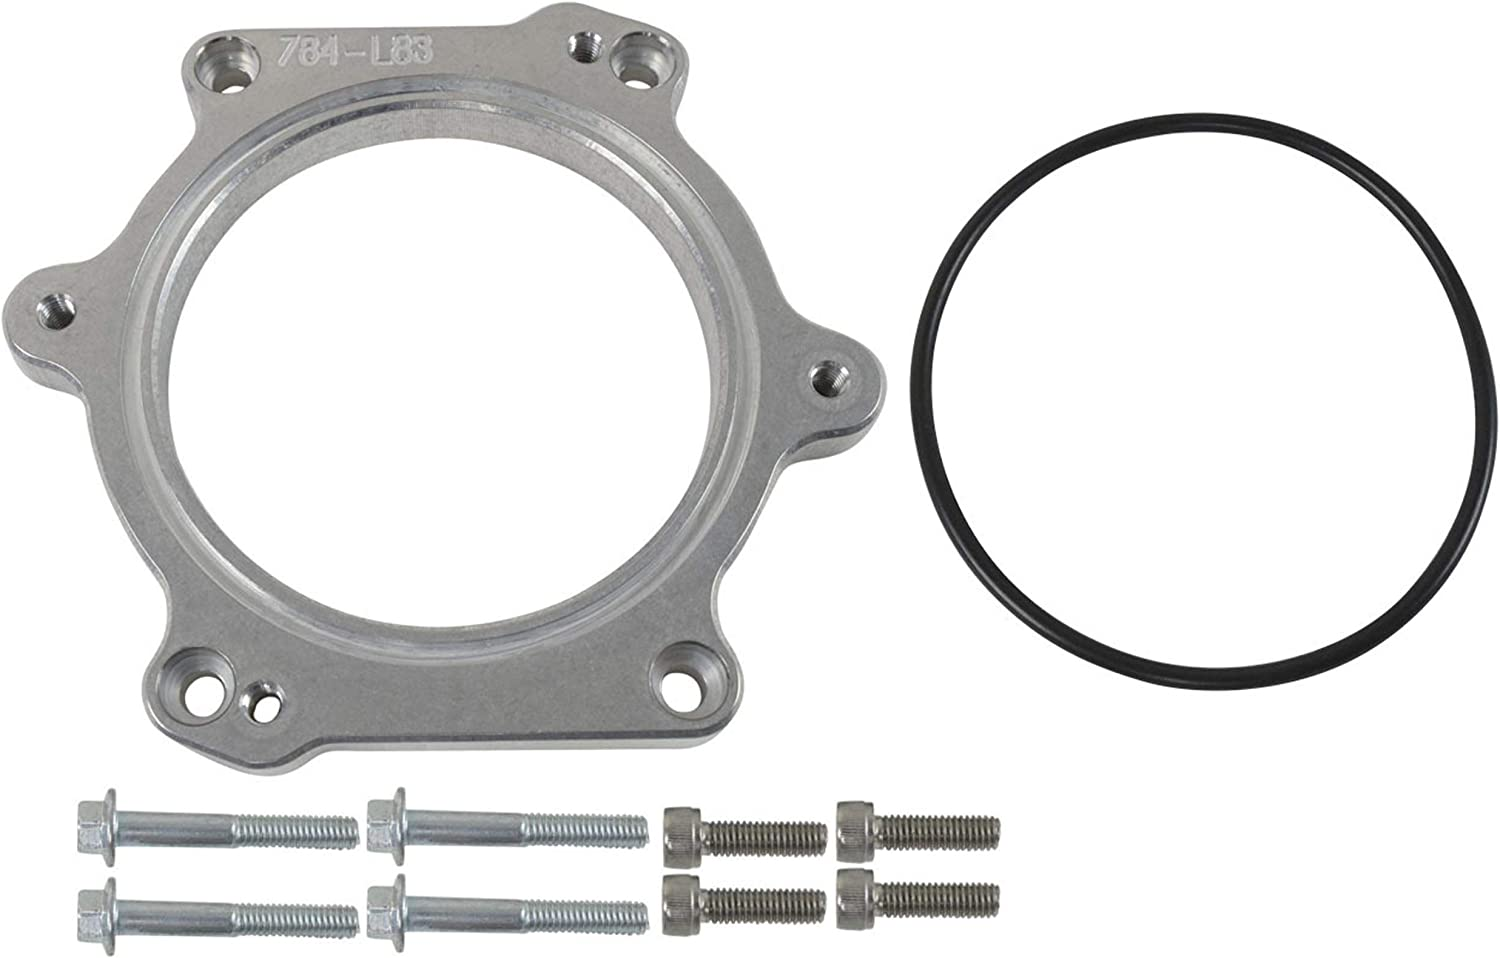 Gen 5 LT5 Throttle Body Rotation Angle Adapter Turn Spin Clocking Rotate